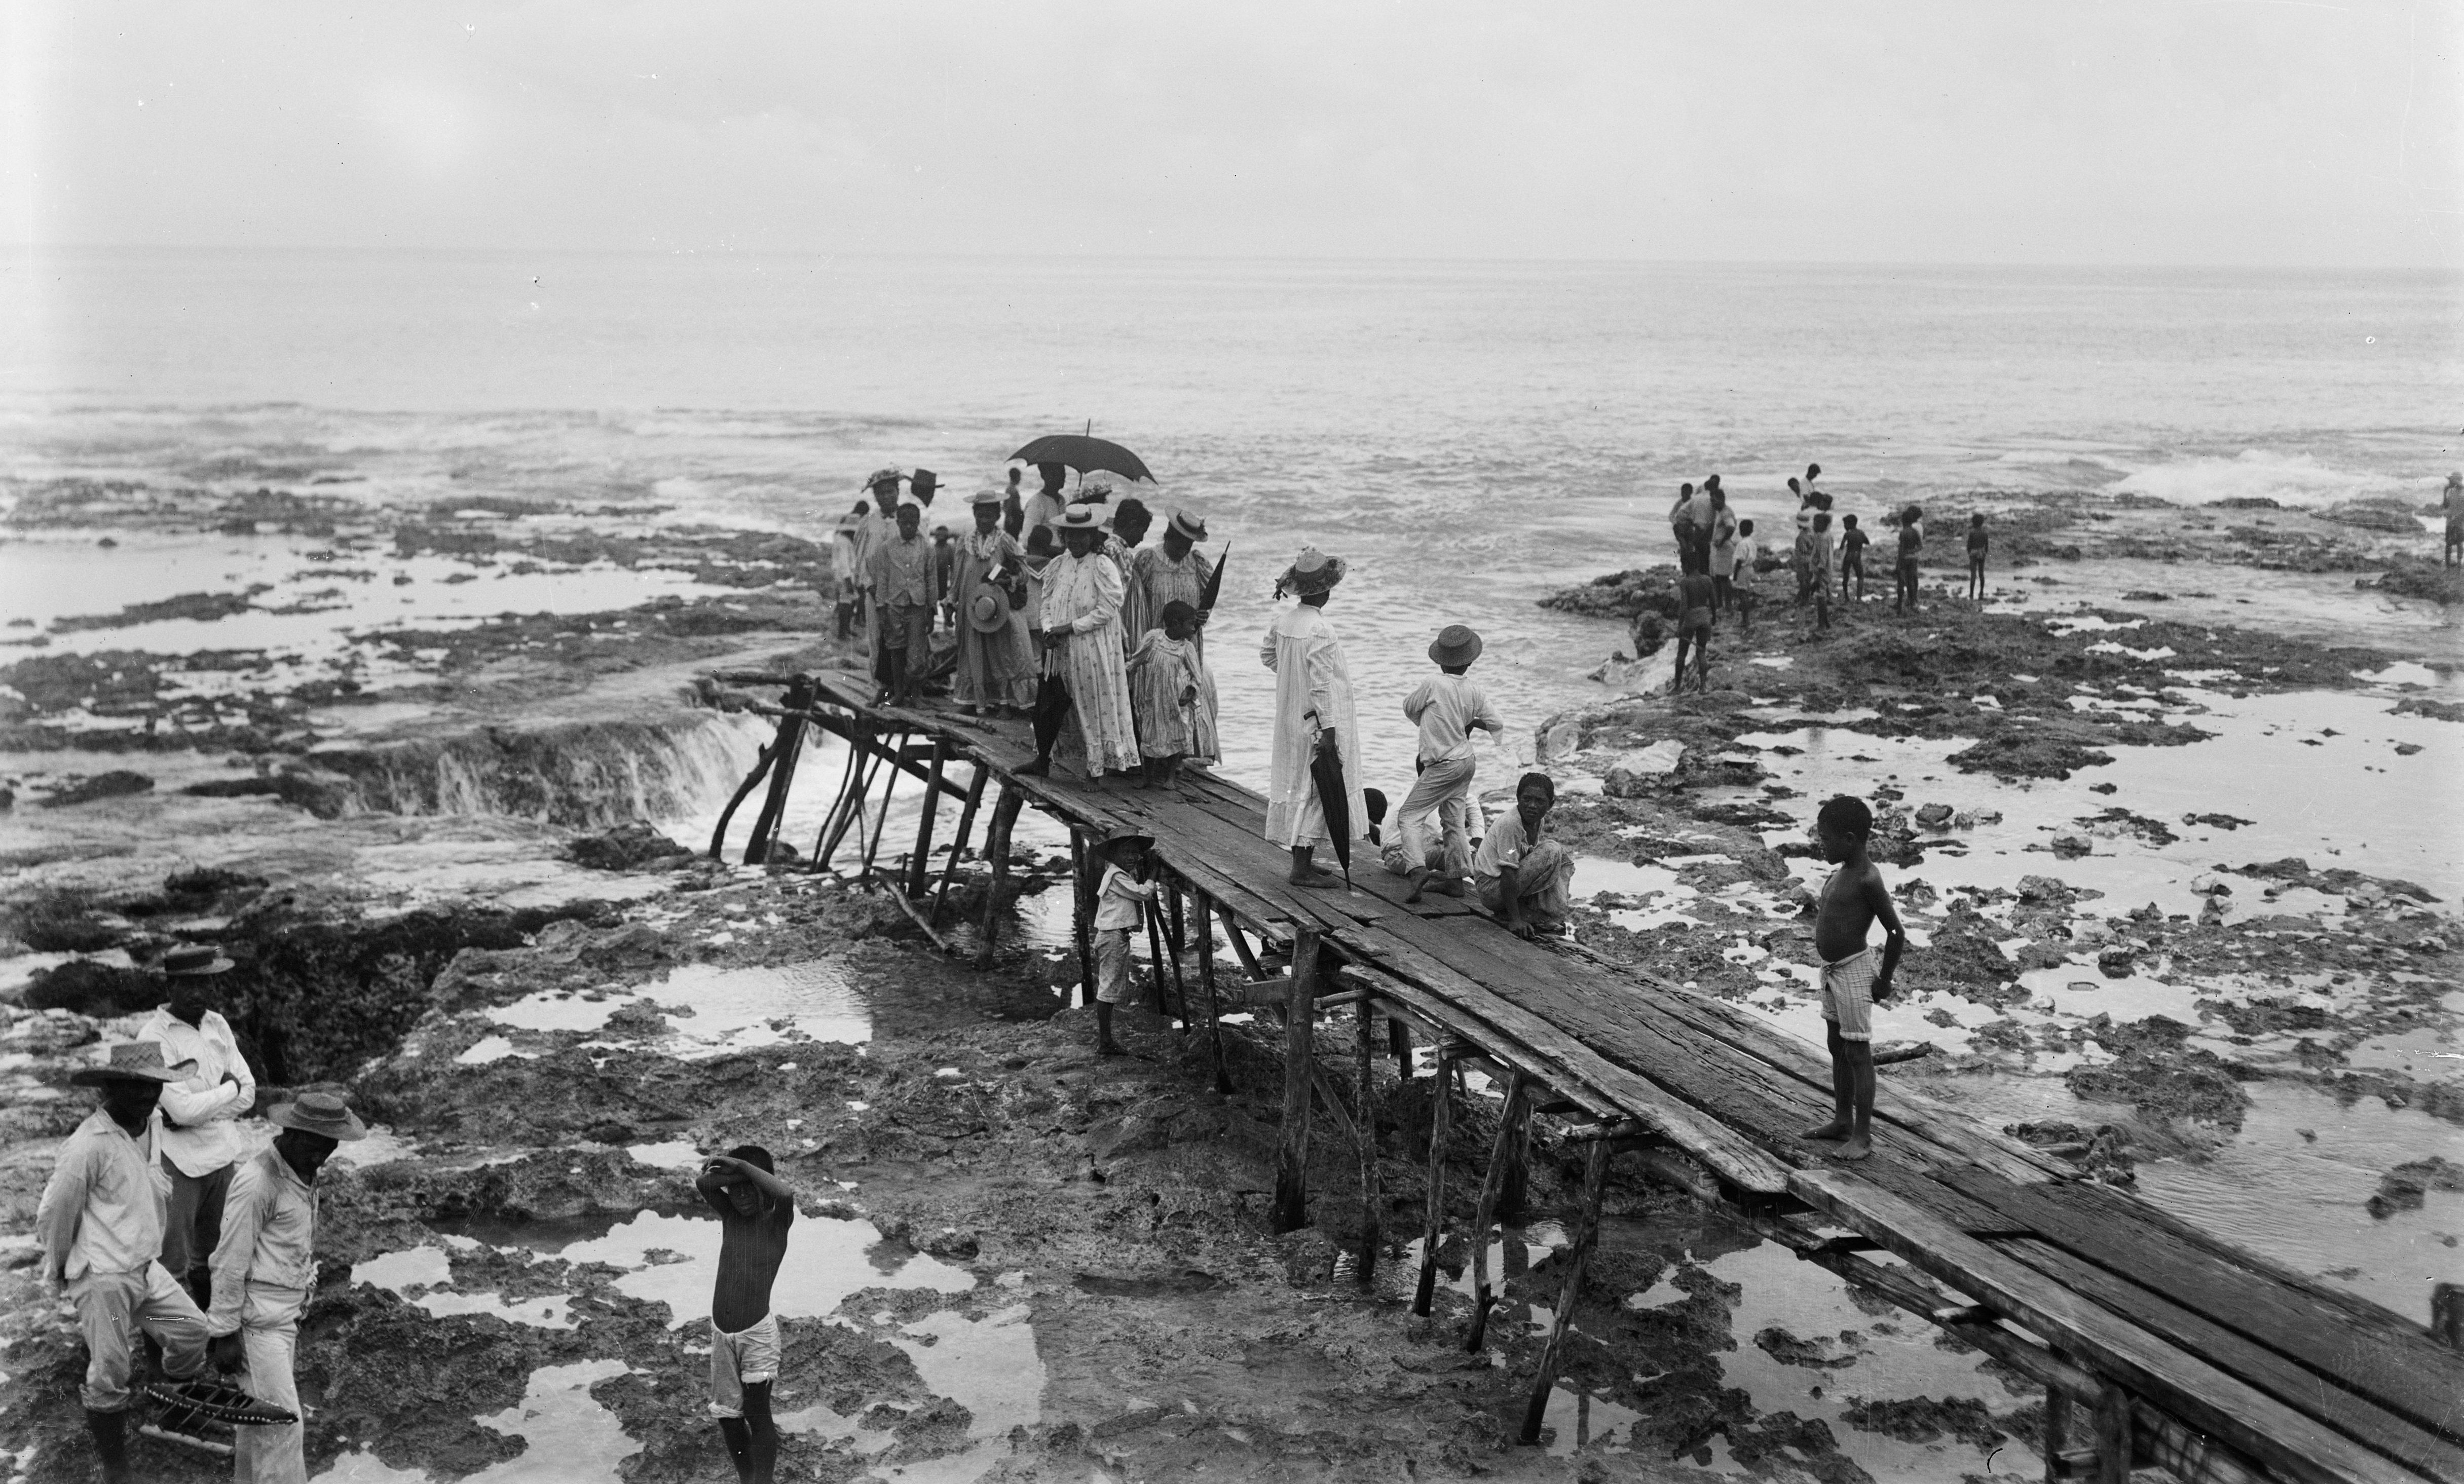 Niueans stand on the wharf at low tide during the visit of New Zealand's Governor-General Lord Ranfurly on the HMS Mildura, October 1900. (Photograph by Malcolm Ross, Alexander Turnbull Library.)